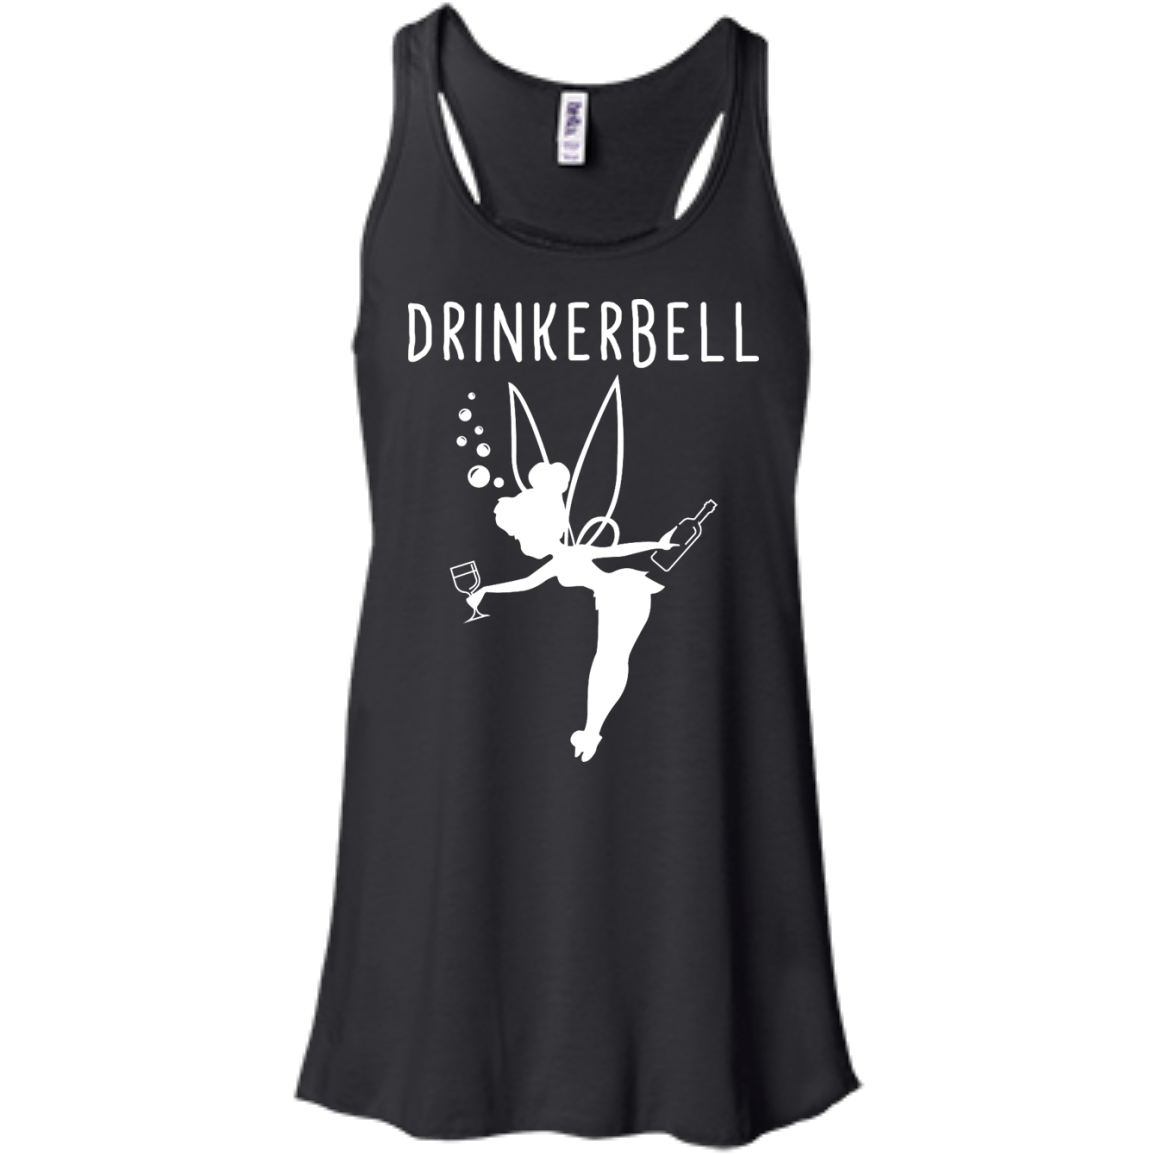 Drinker Bell Women's Tank Top, Men Tank top Drinkerbell t shirt